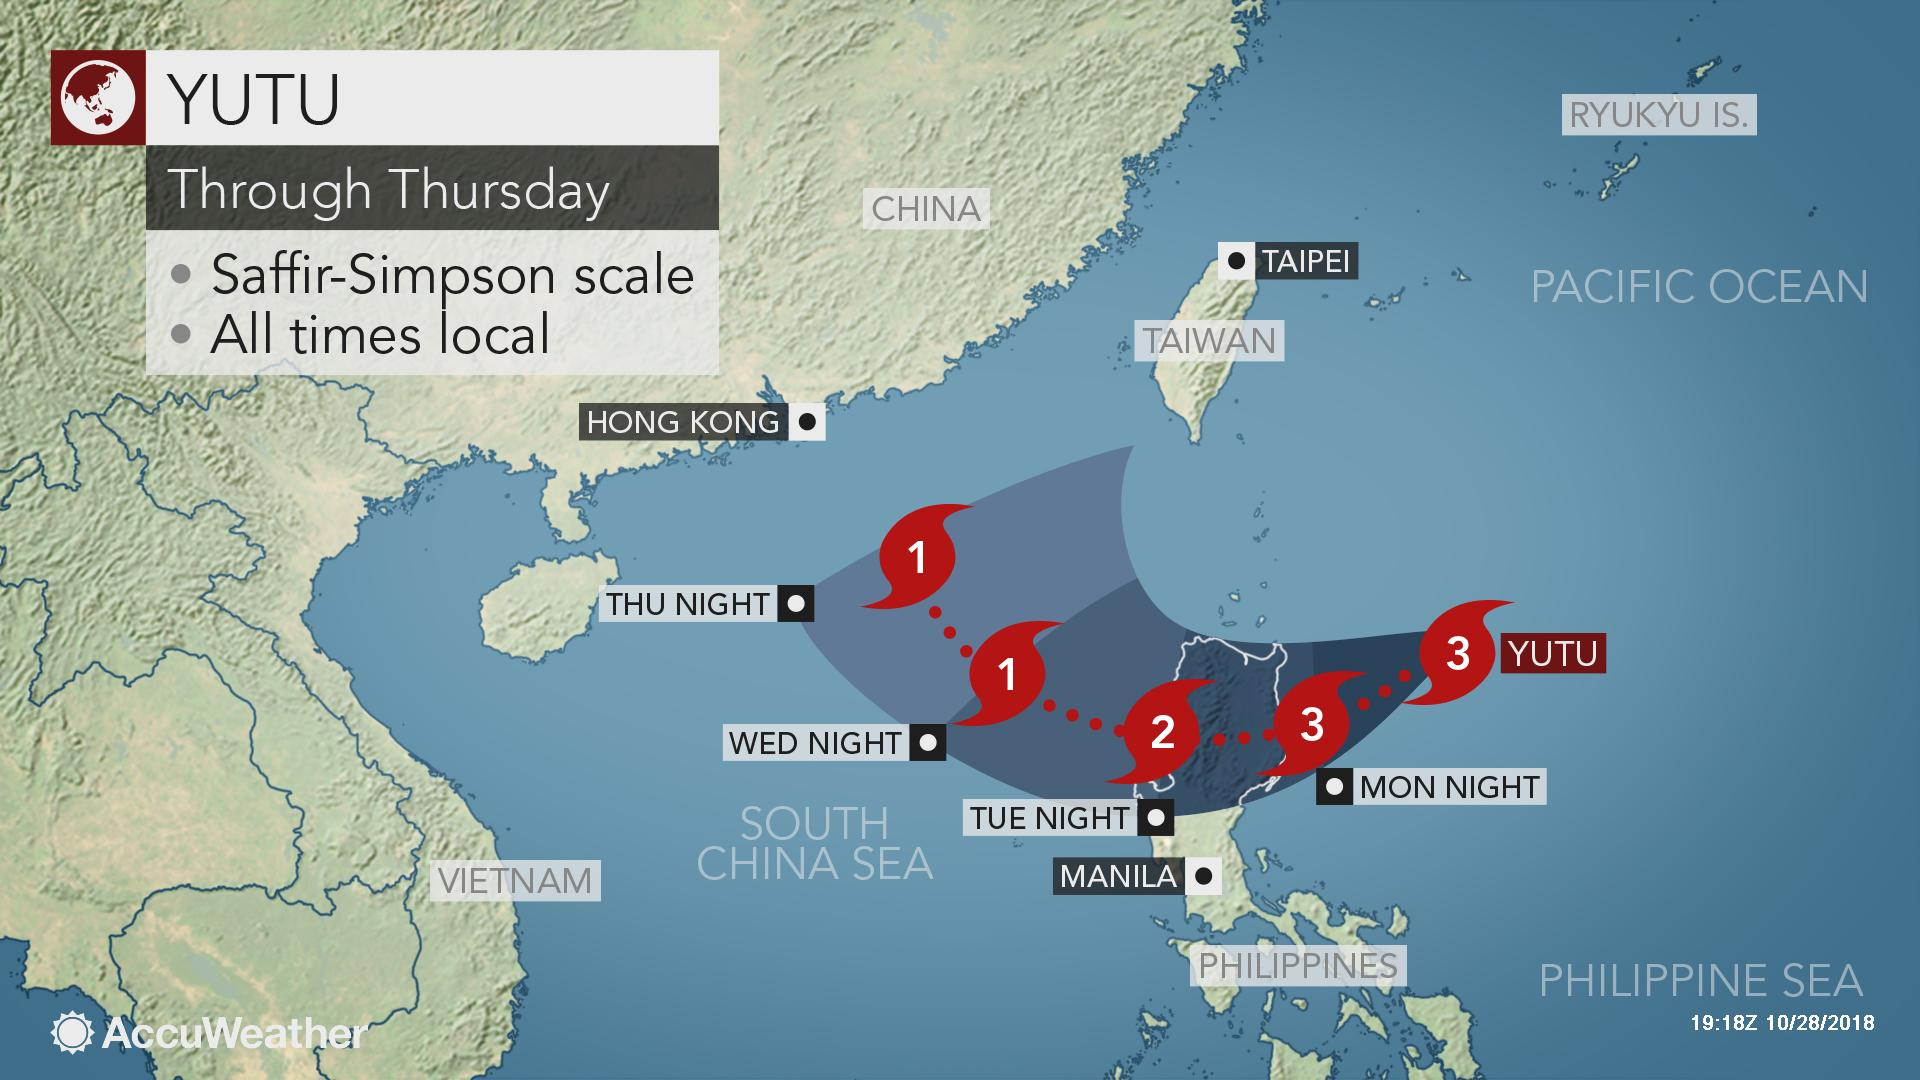 Typhoon Yutu to bring torrential rain, damaging winds to the